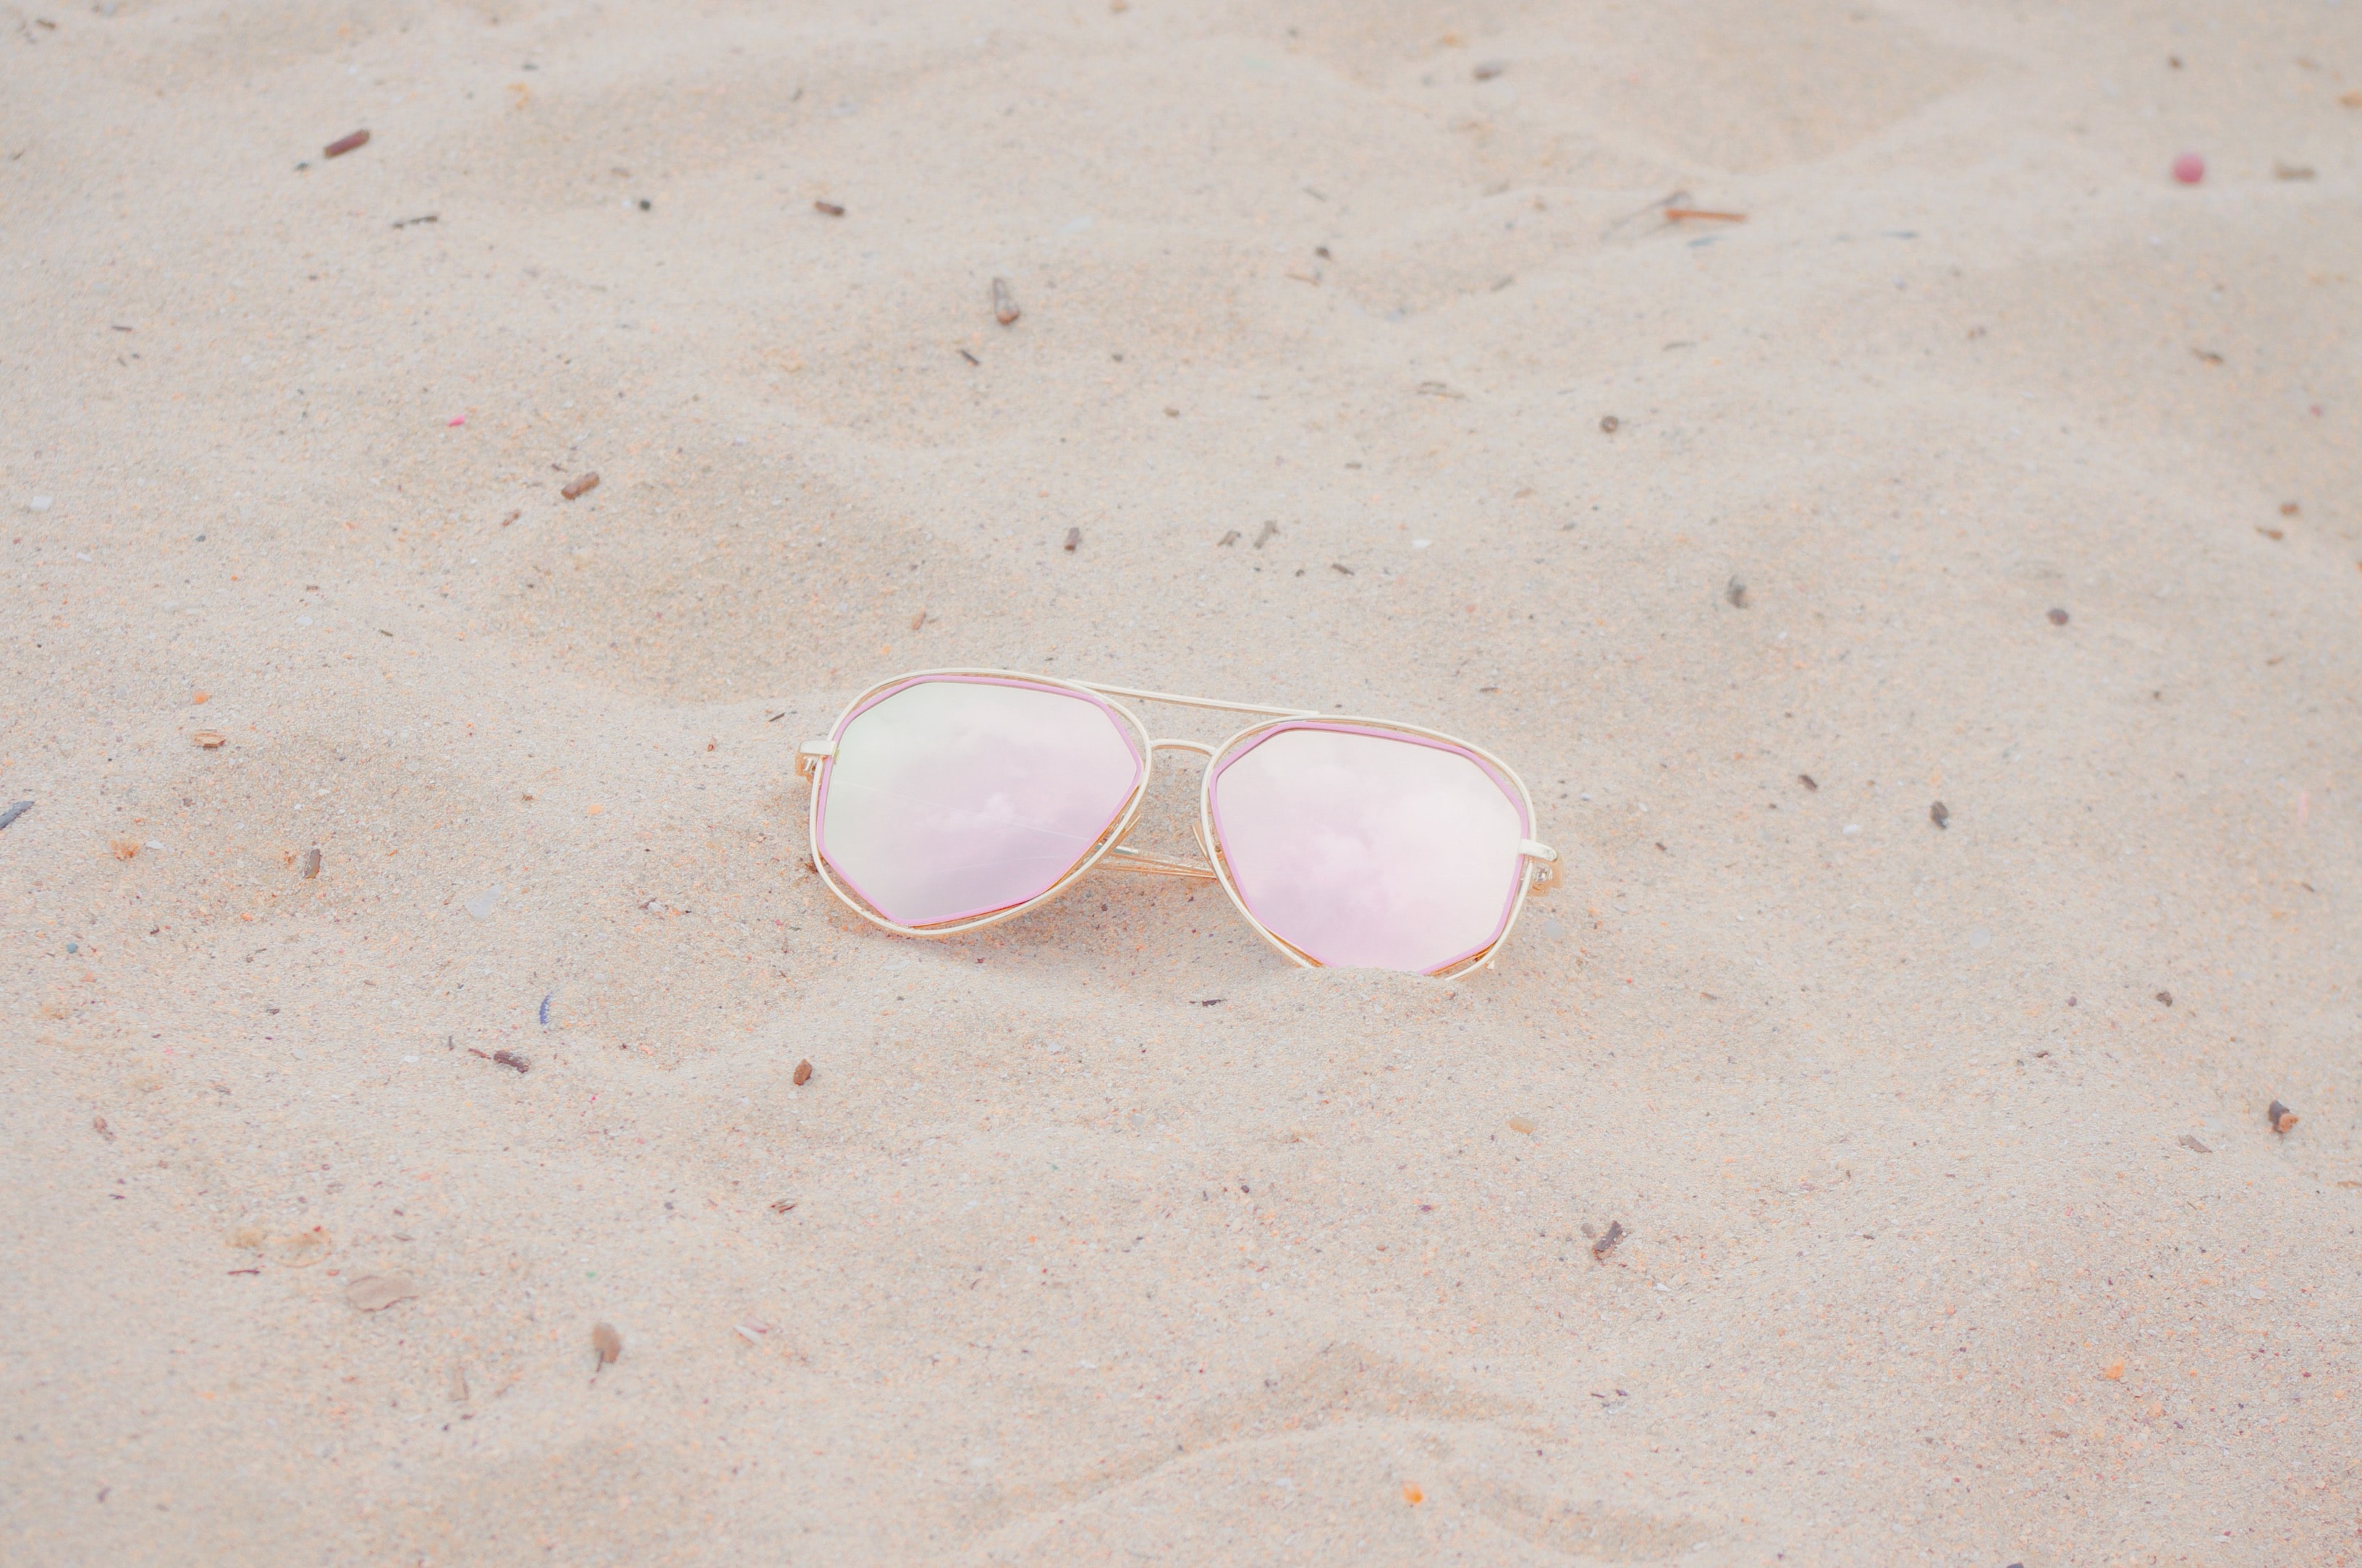 silver framed Aviator-style sunglasses on sand